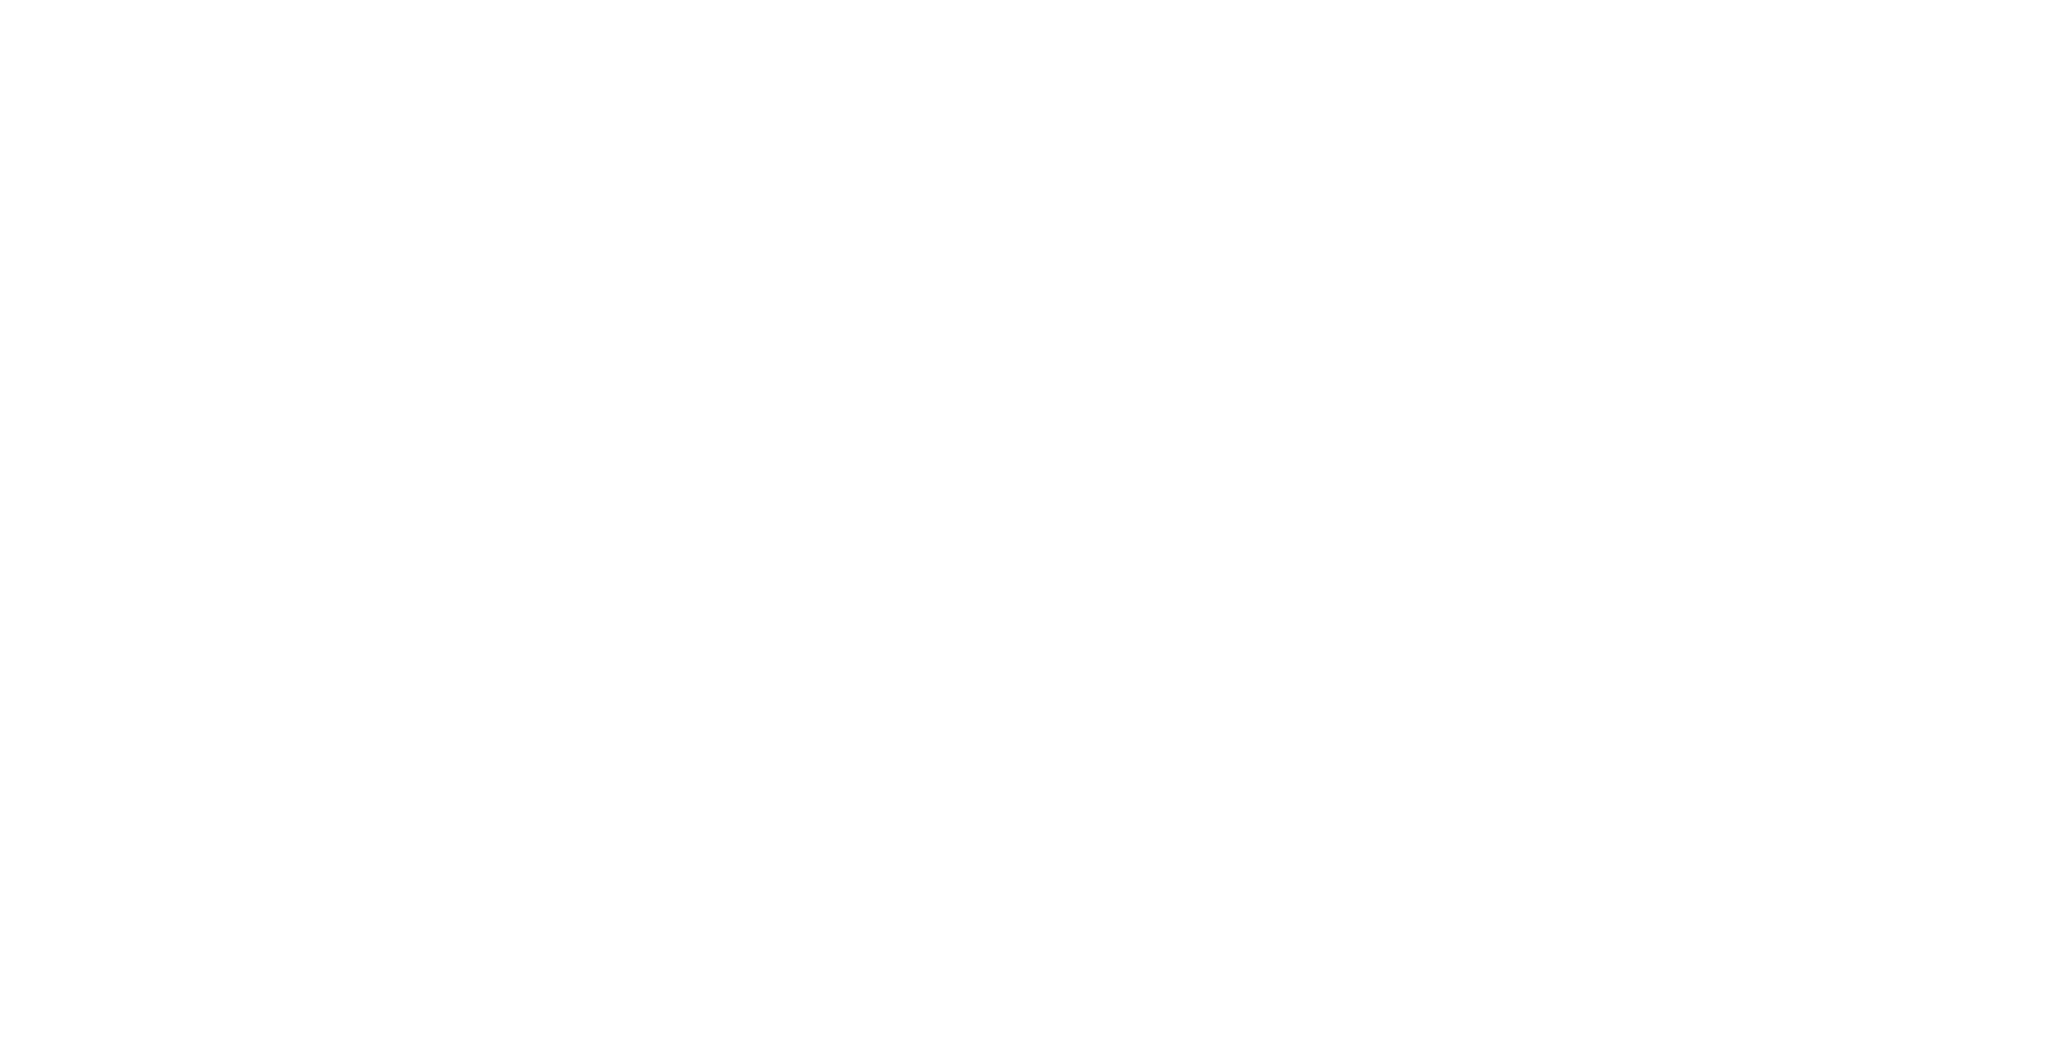 Pennsylvania Medical Society logo